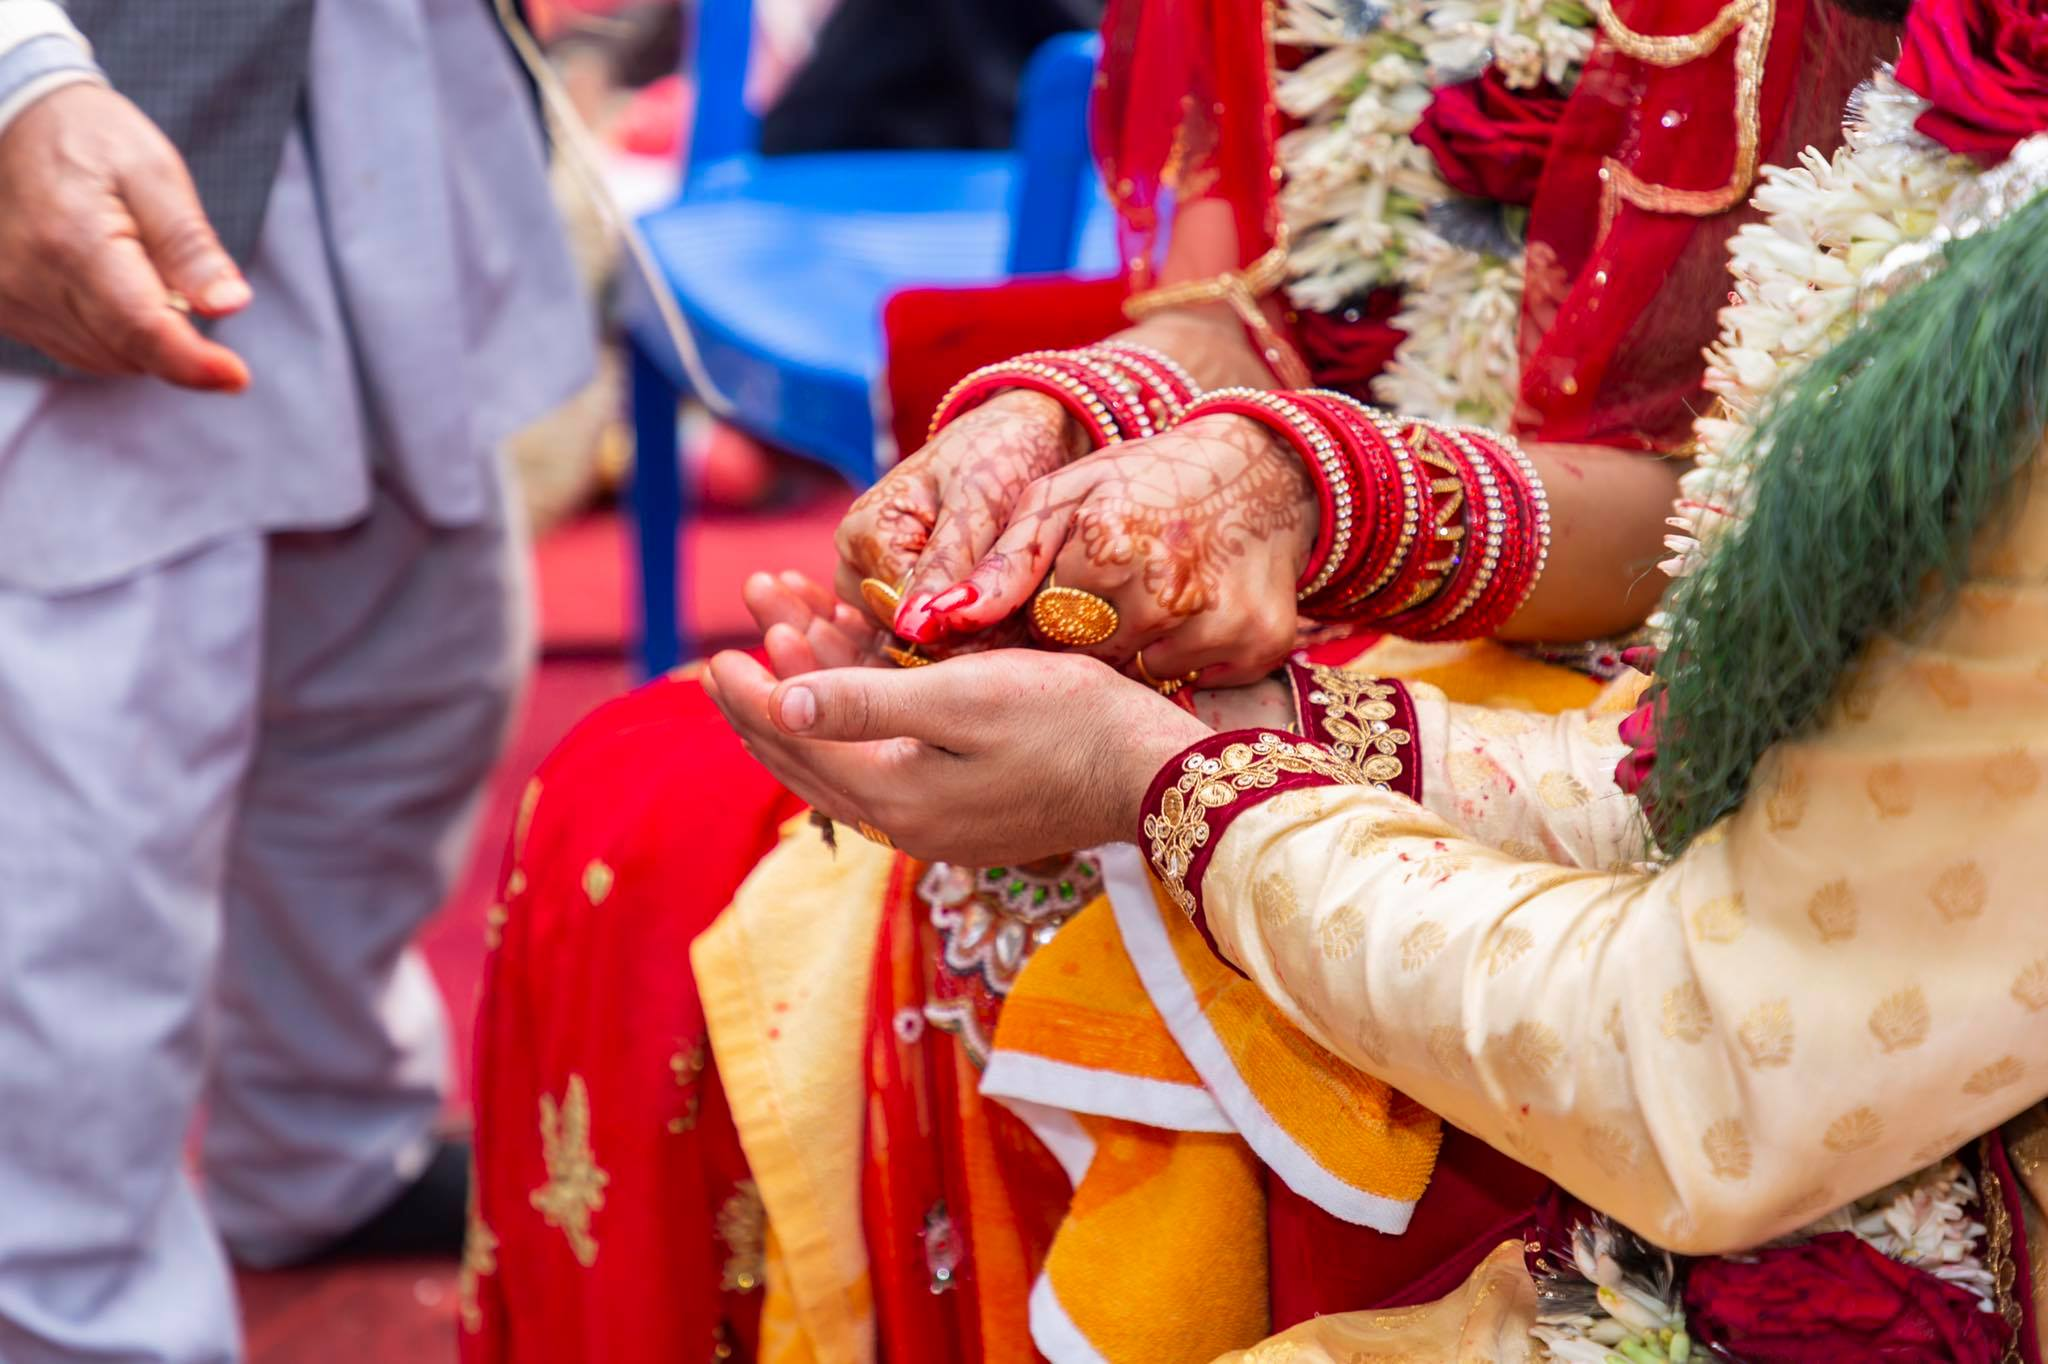 13 Important queries about Marriage Ceremony